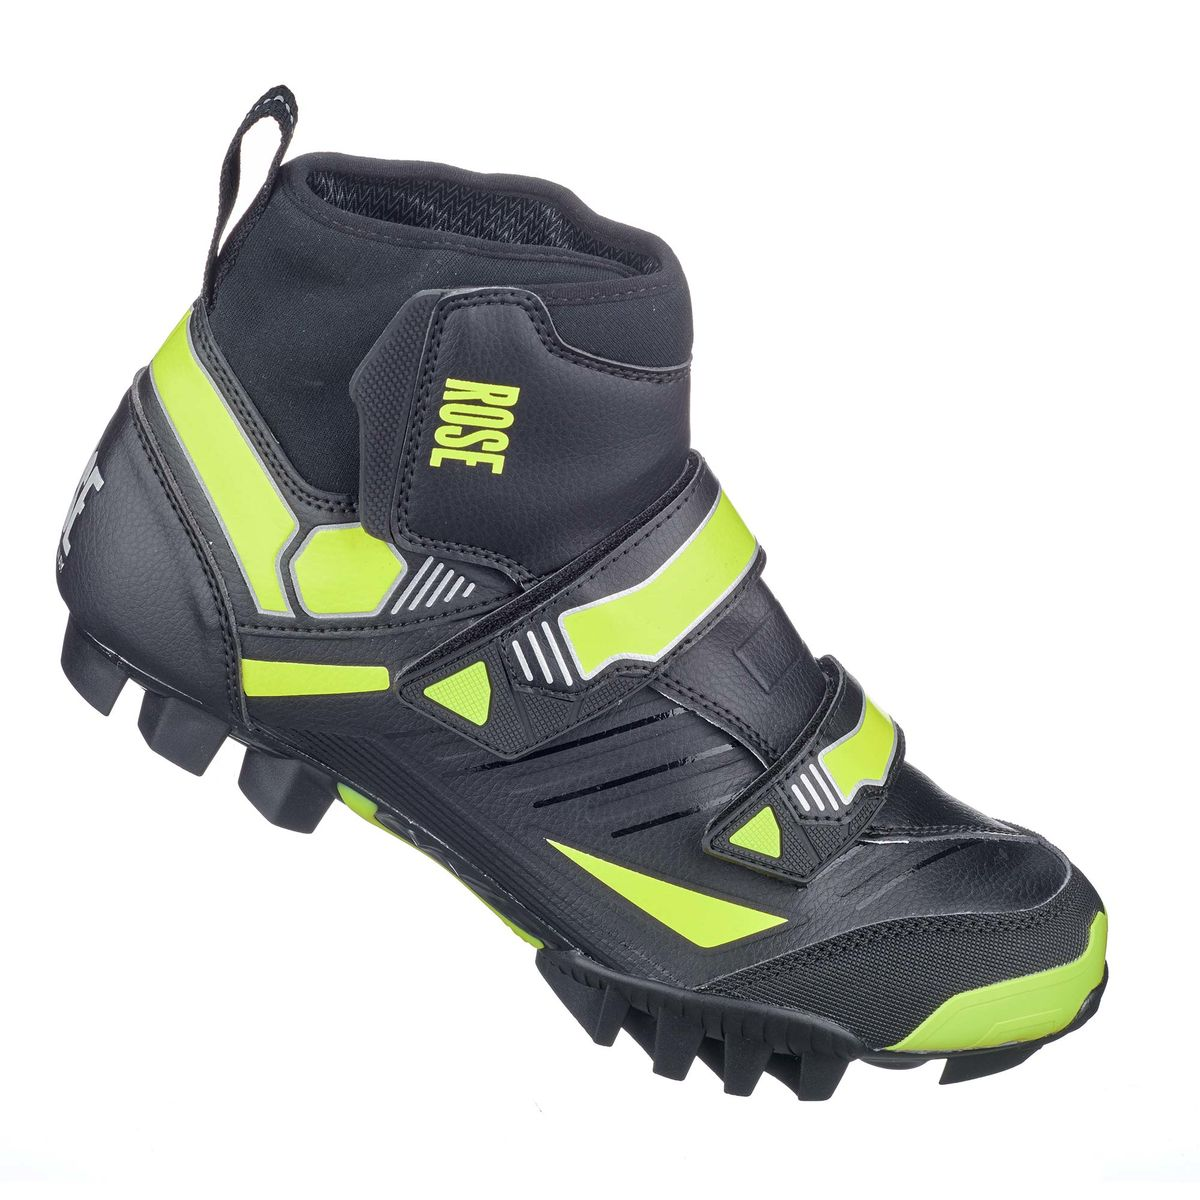 RWS 03 winter MTB shoes